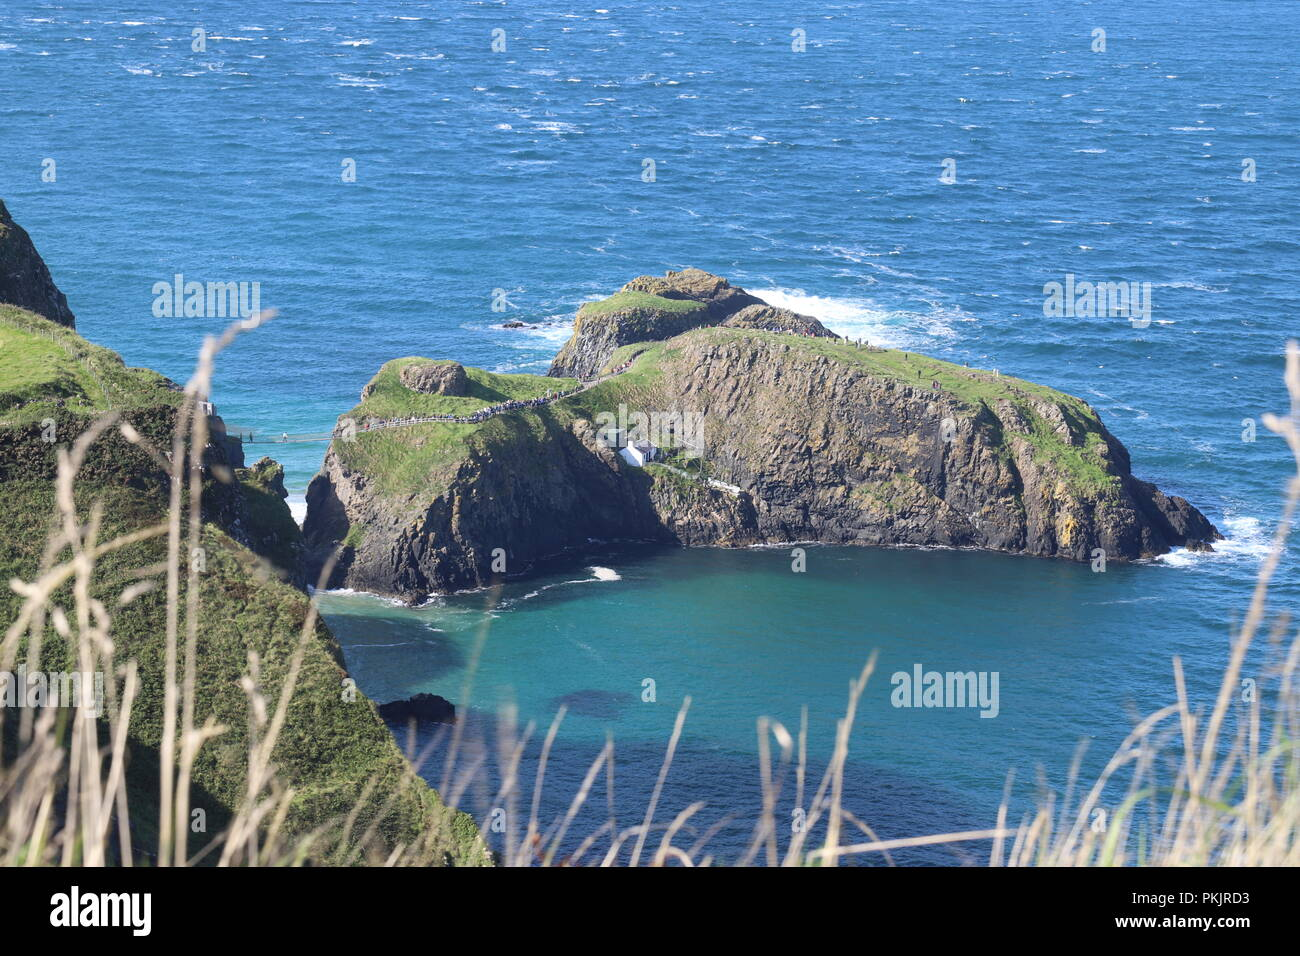 Carrick-a-Rede Rope Bridge near Ballintoy, Coounty Antrim, Northern Ireland spanning a 30m gap between the mainland and Carrick Island. Owned by N.T. - Stock Image